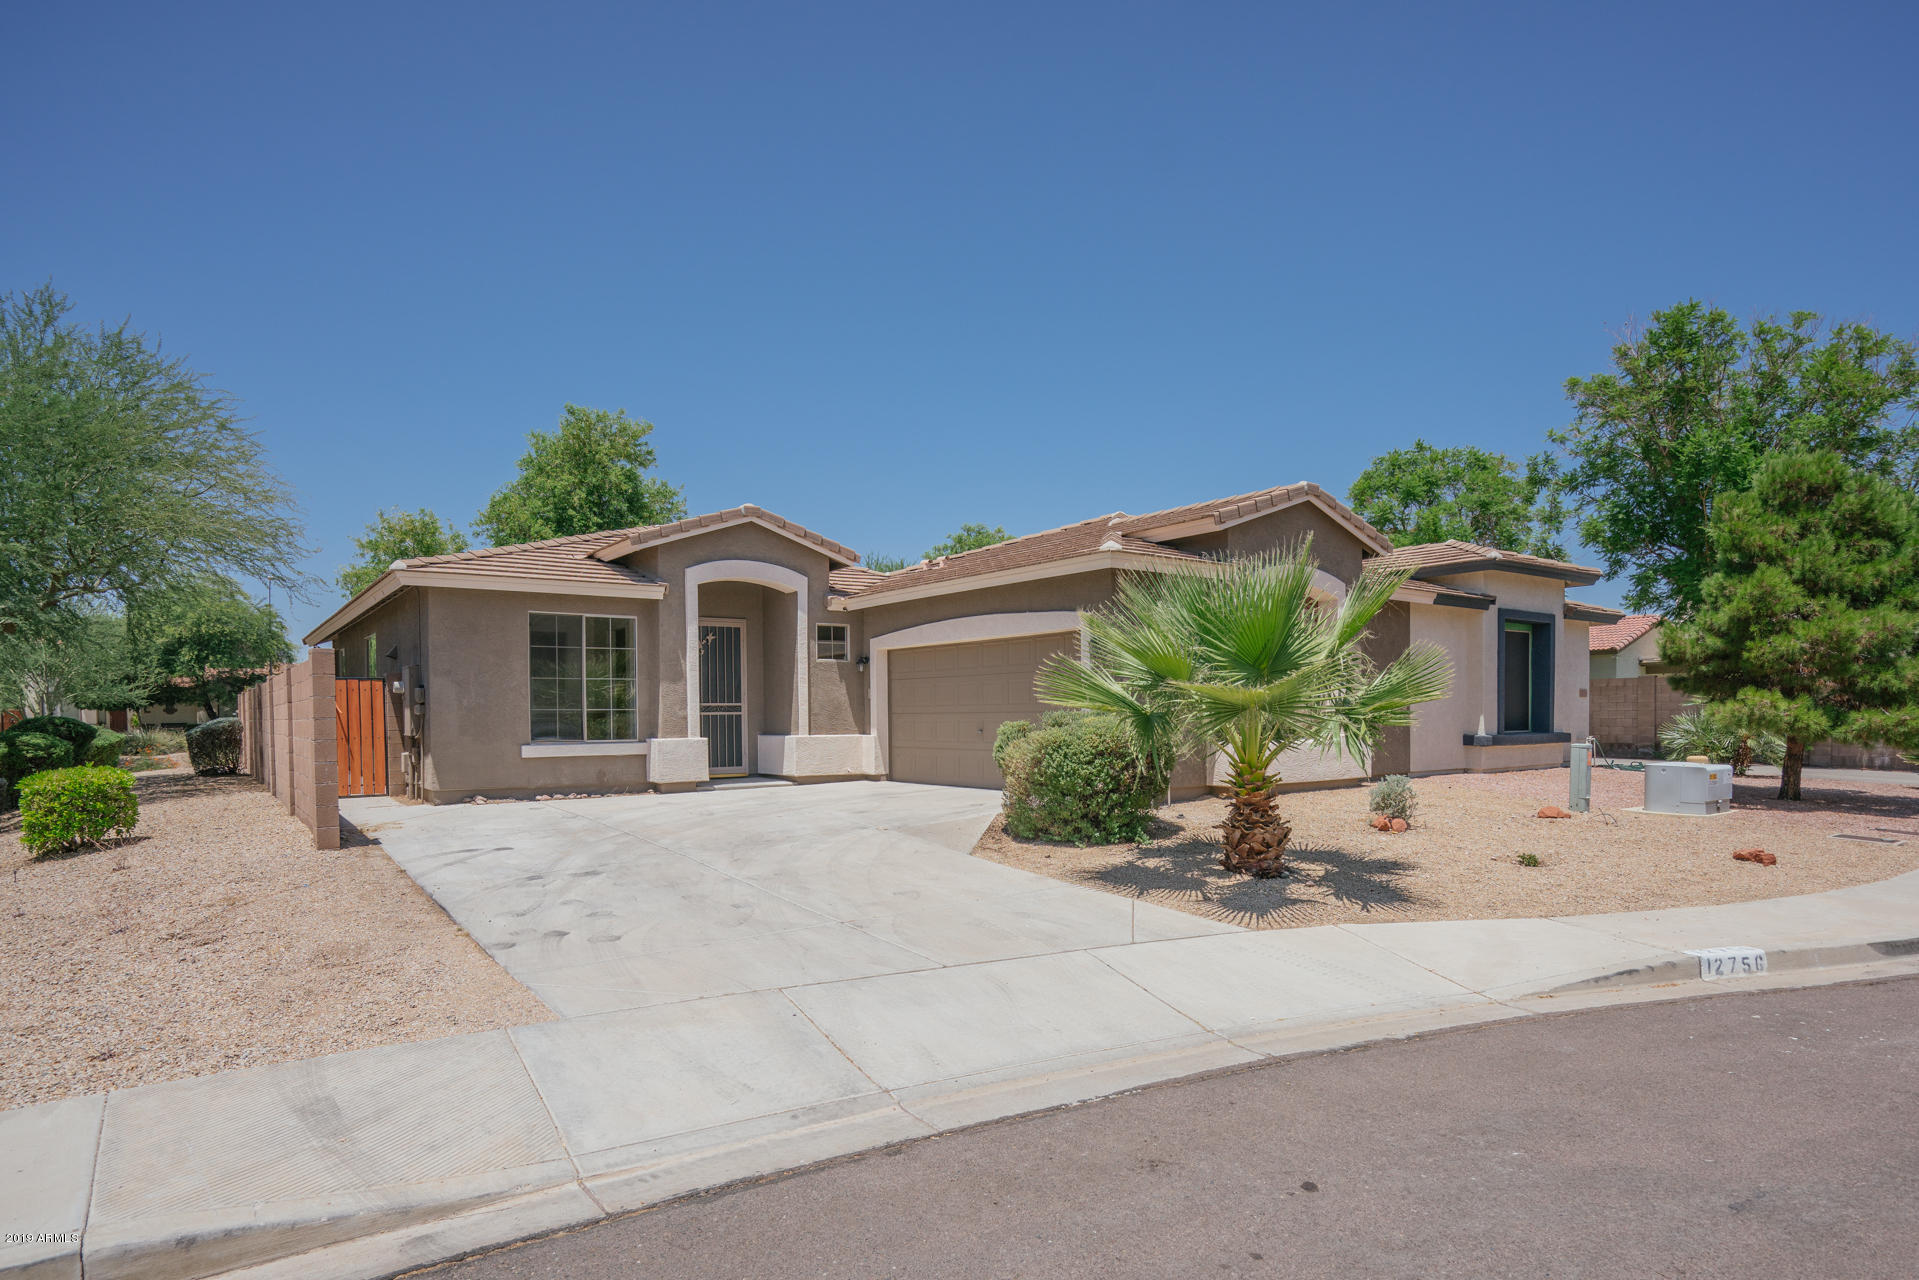 12756 N 88TH Avenue, one of homes for sale in Peoria